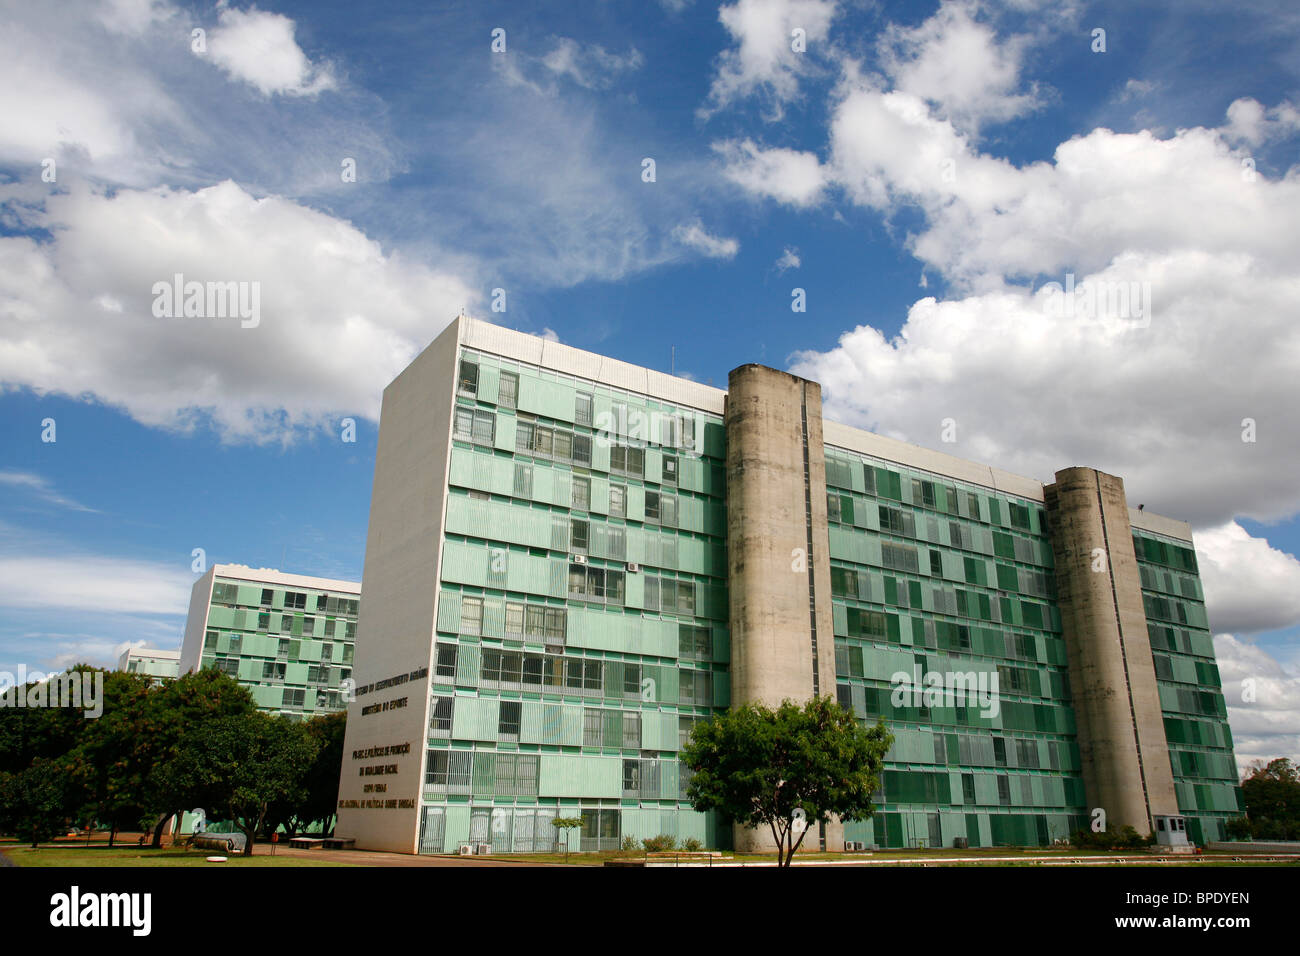 Esplanada dos Ministerios or the Ministries Avenue, Brasilia, Brazil. - Stock Image